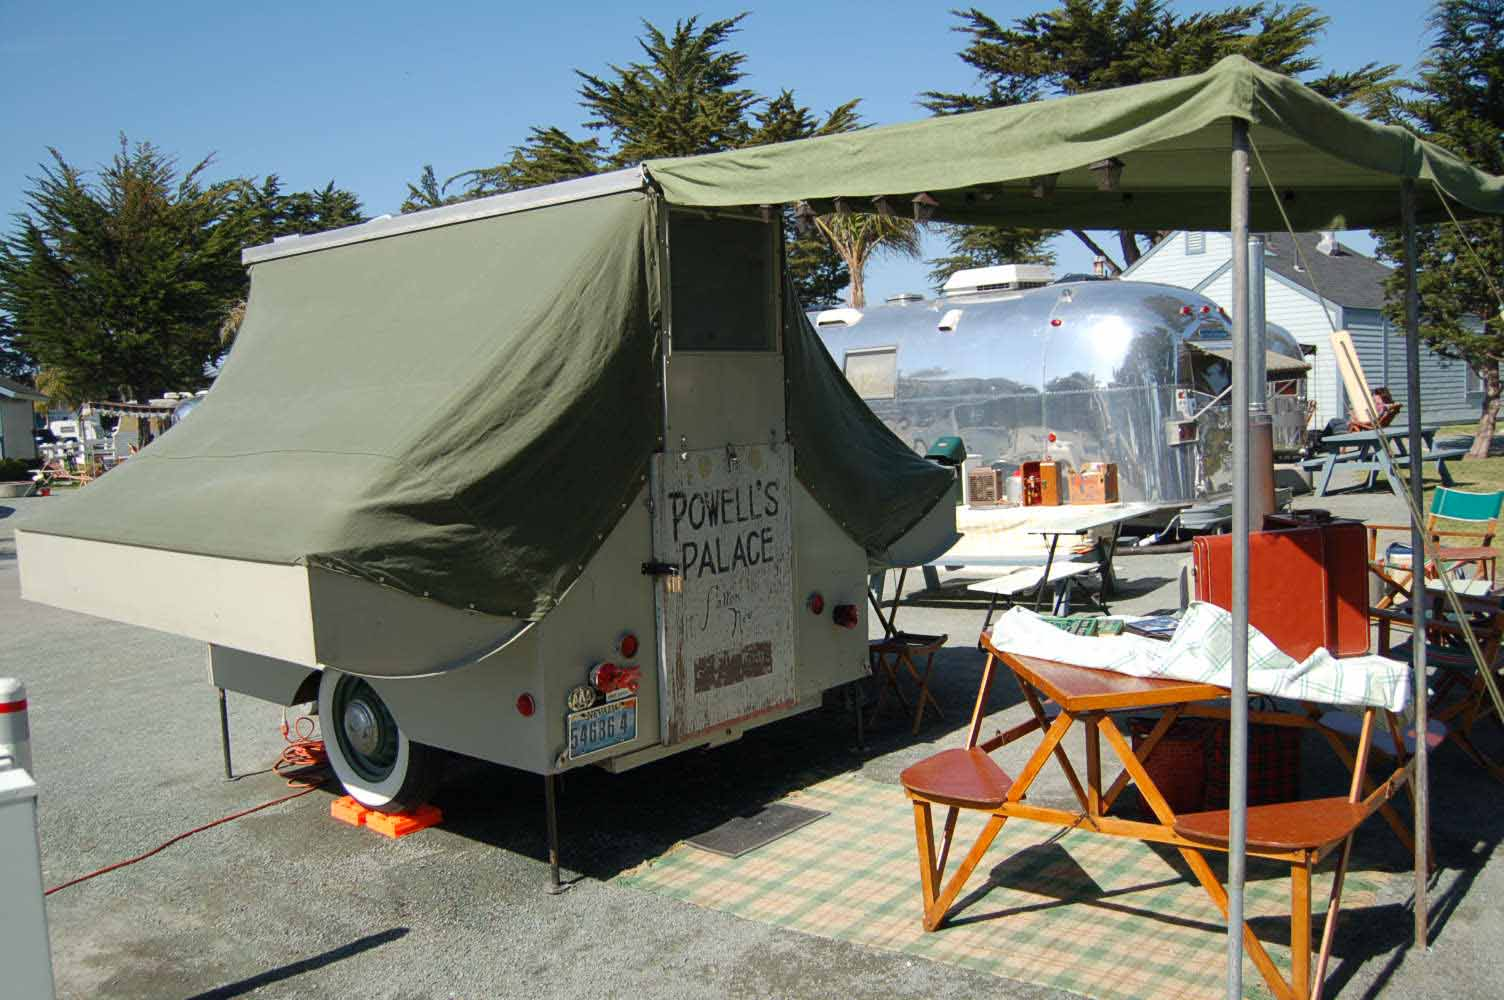 Starling Travel 187 Powell S Palace Tent Trailer